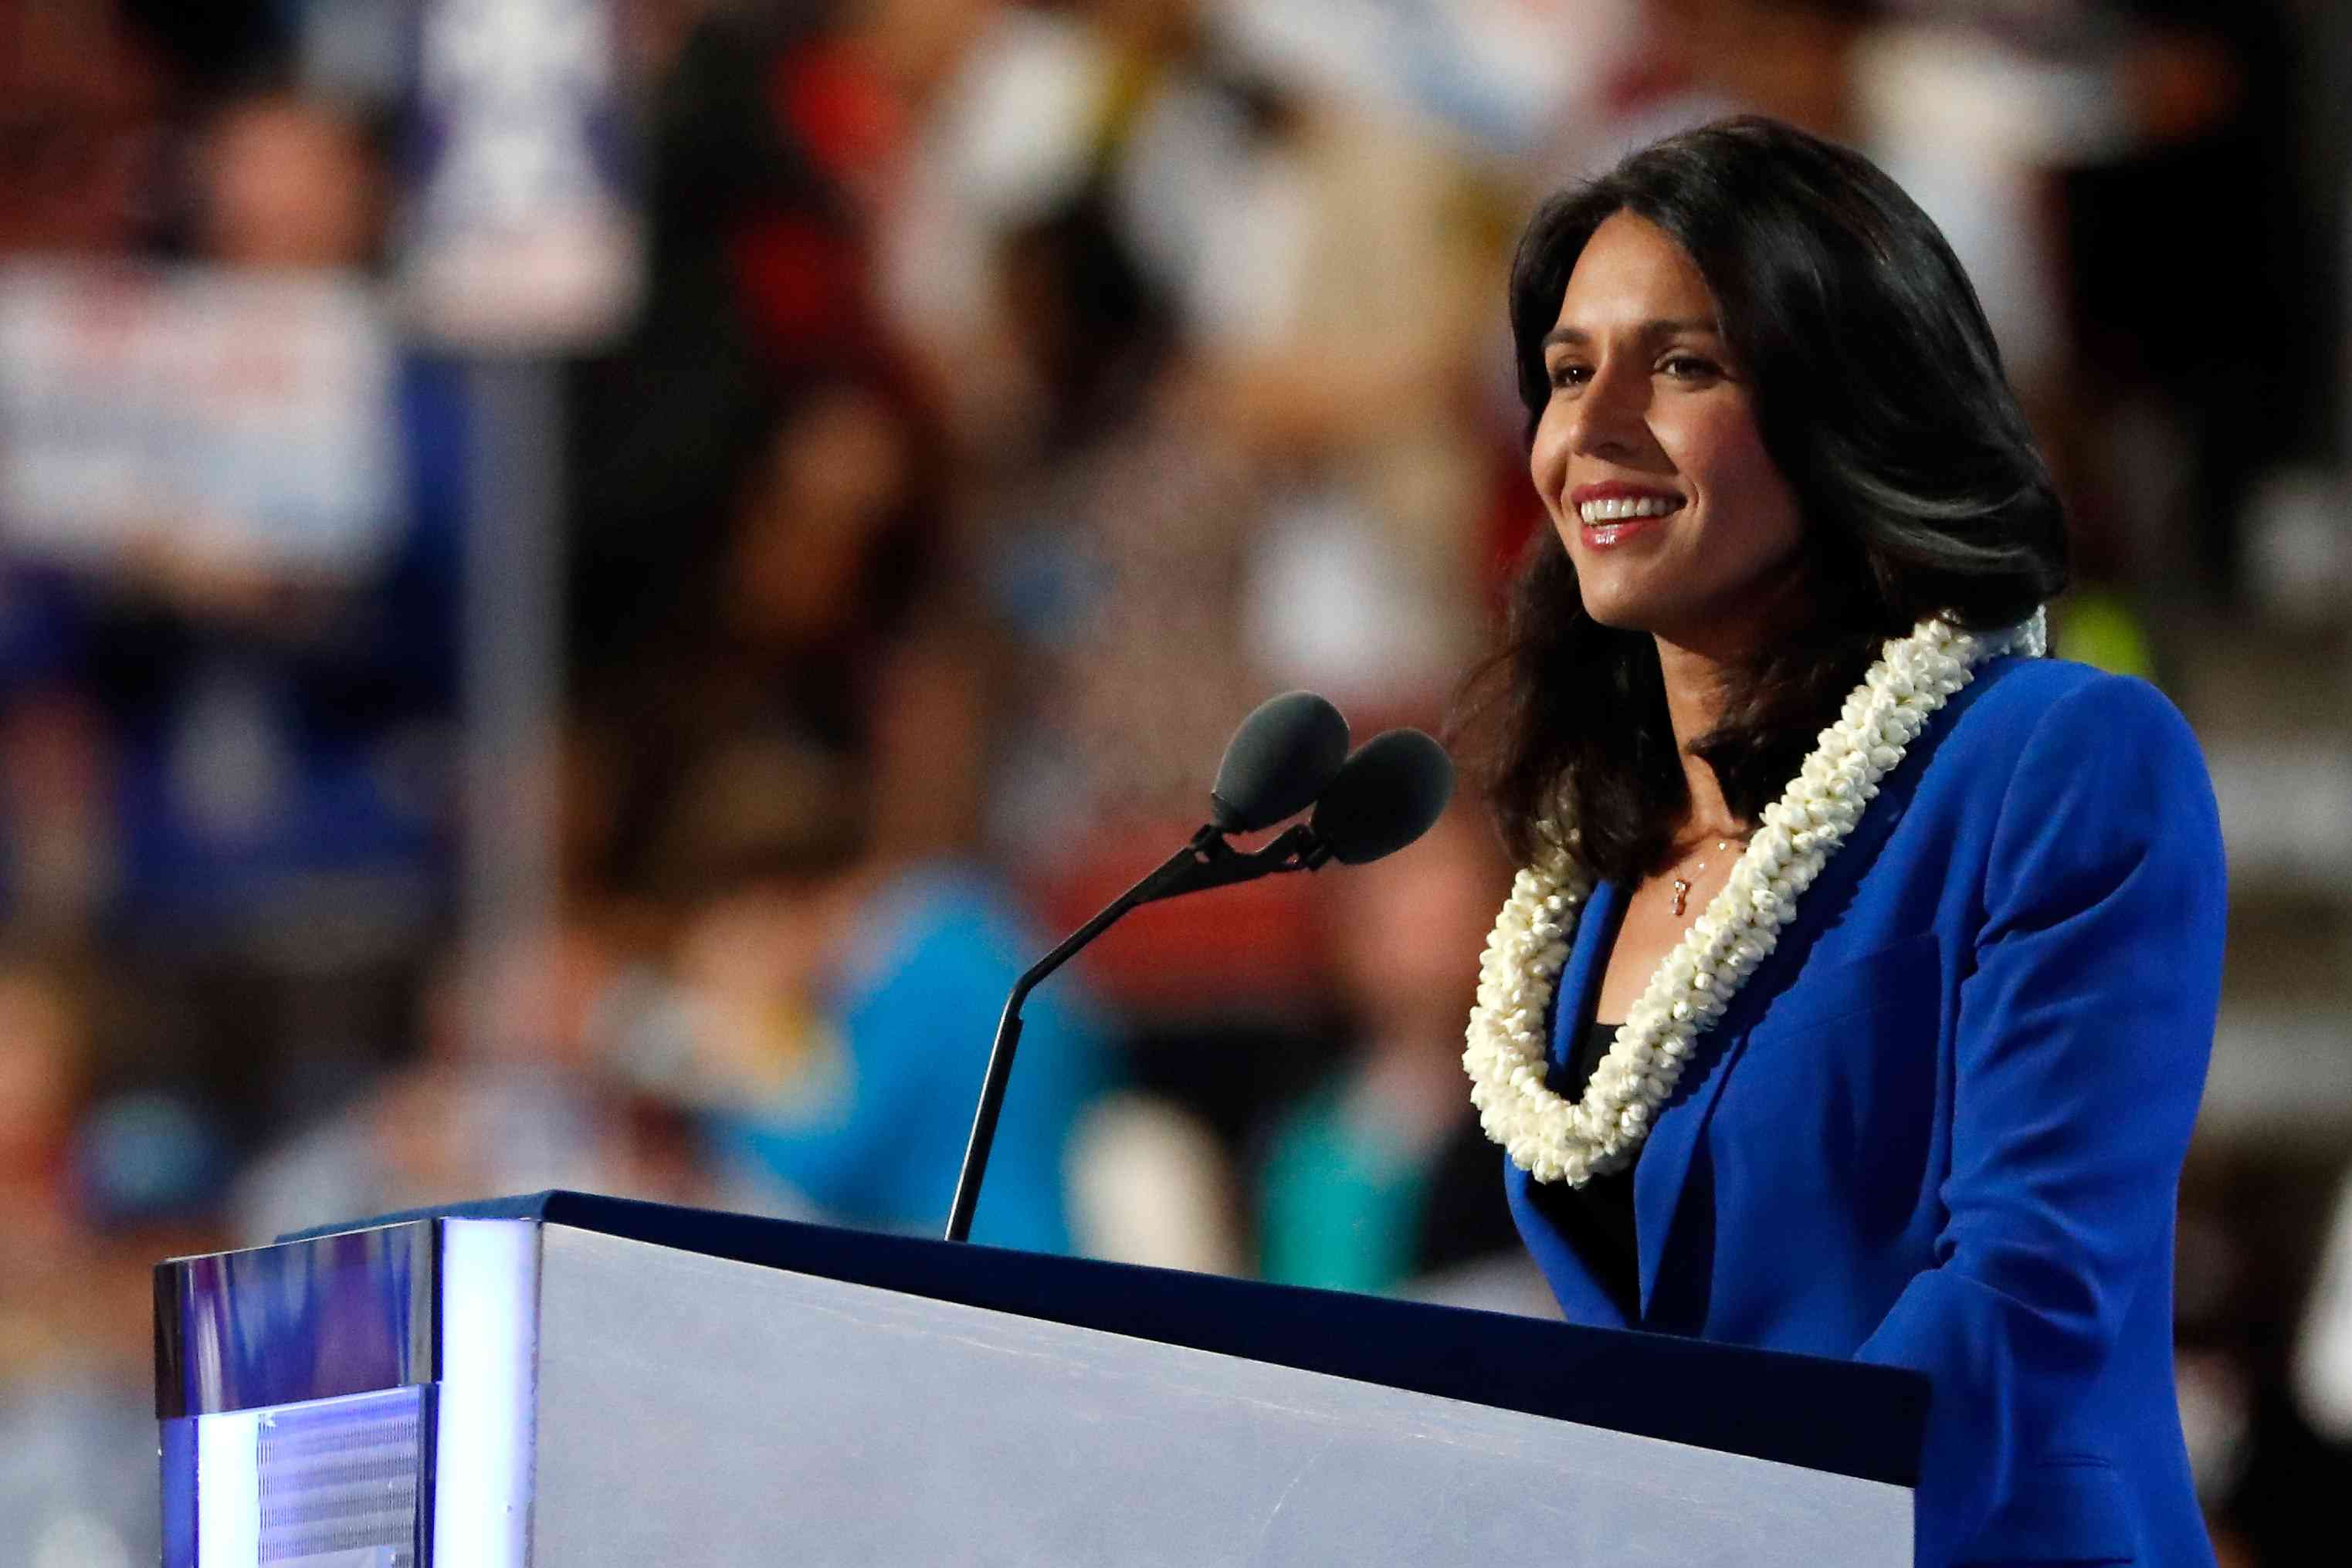 Democratic presidential candidate Tulsi Gabbard standing at a podium